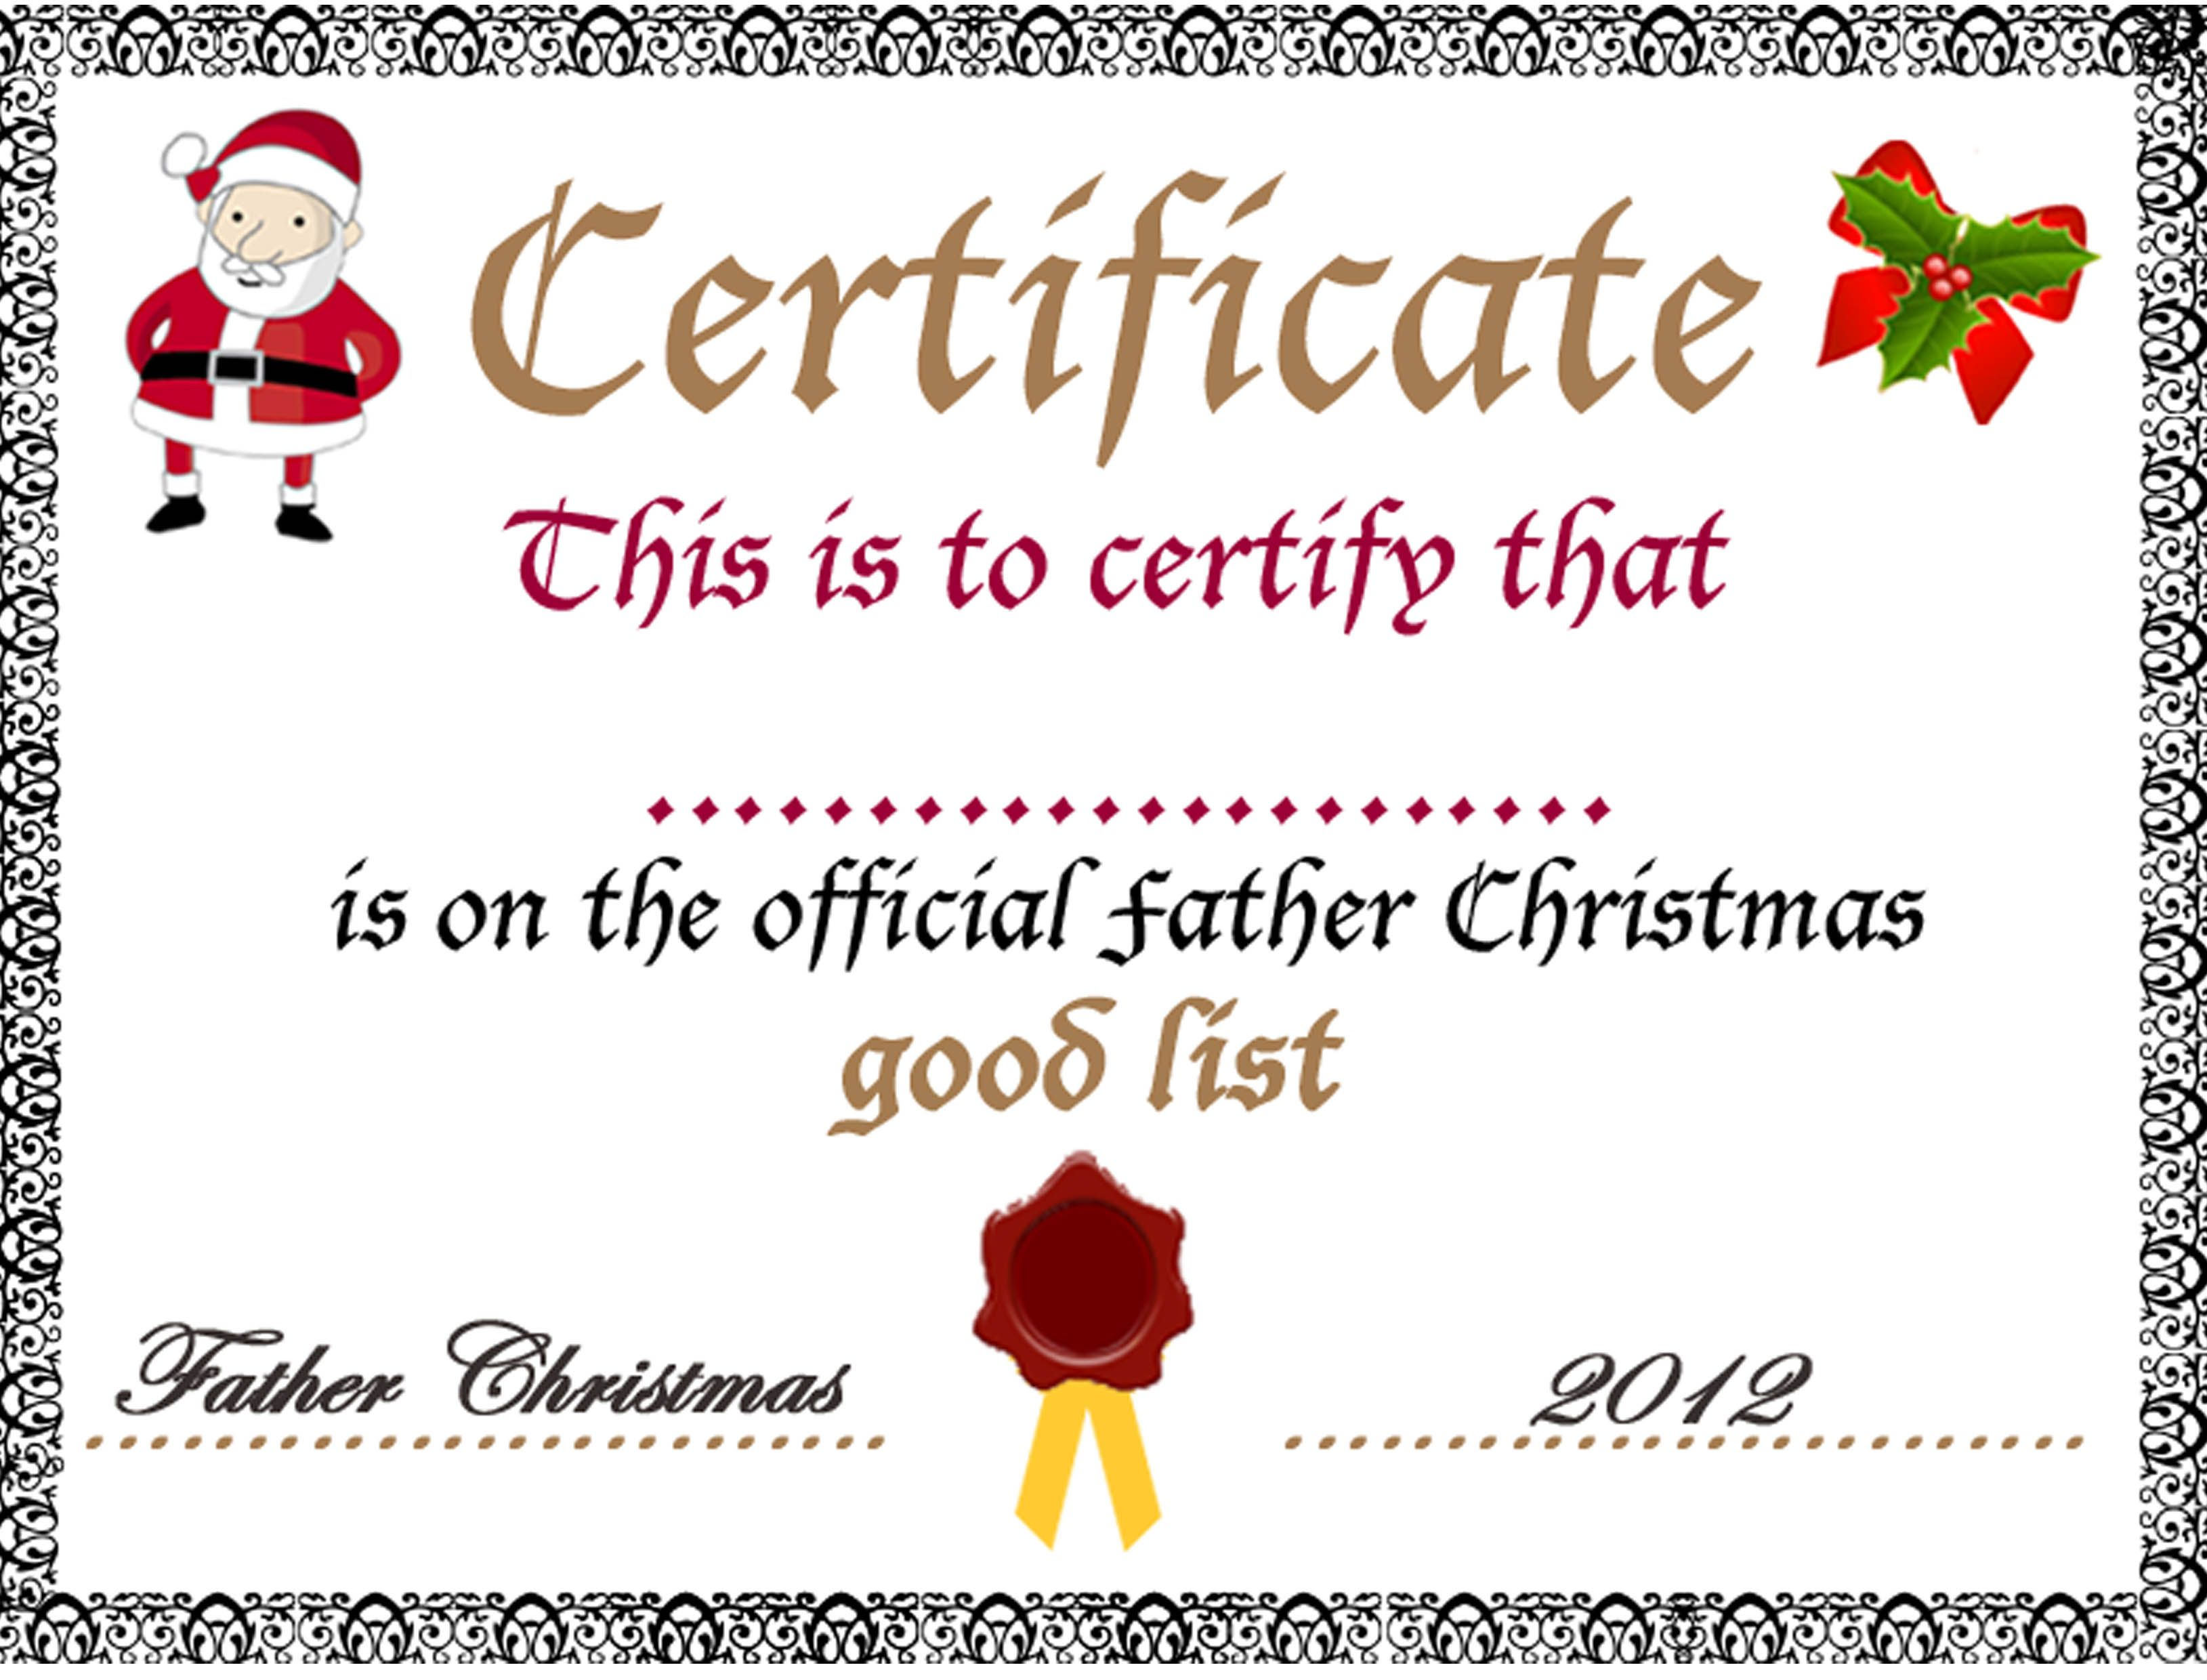 Good list certificate from father christmas free printable good list certificate from father christmas free printable template alramifo Image collections